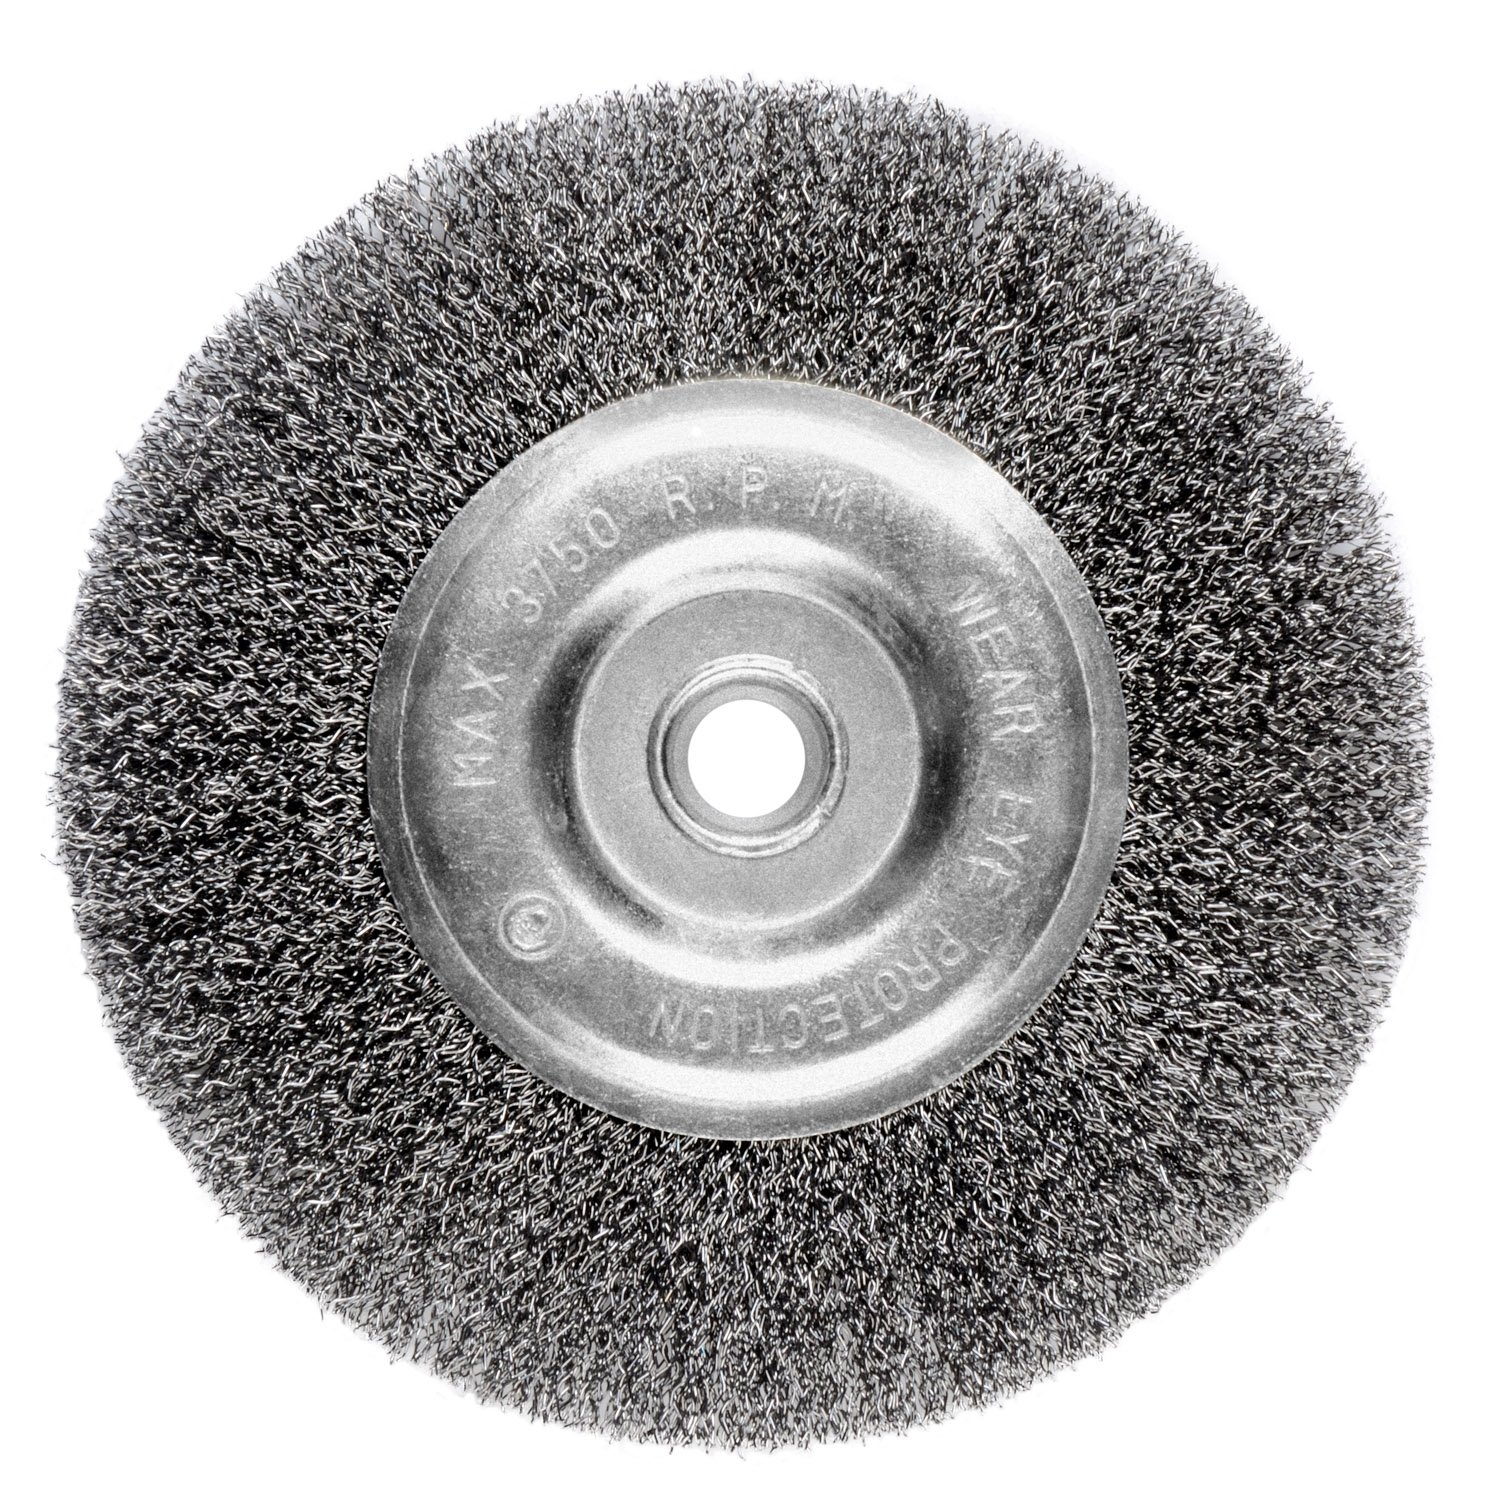 Ansen Tools AN 305 6-Inch Wire Bench Wheel Fine Crimped with 1/2-Inch Arbor